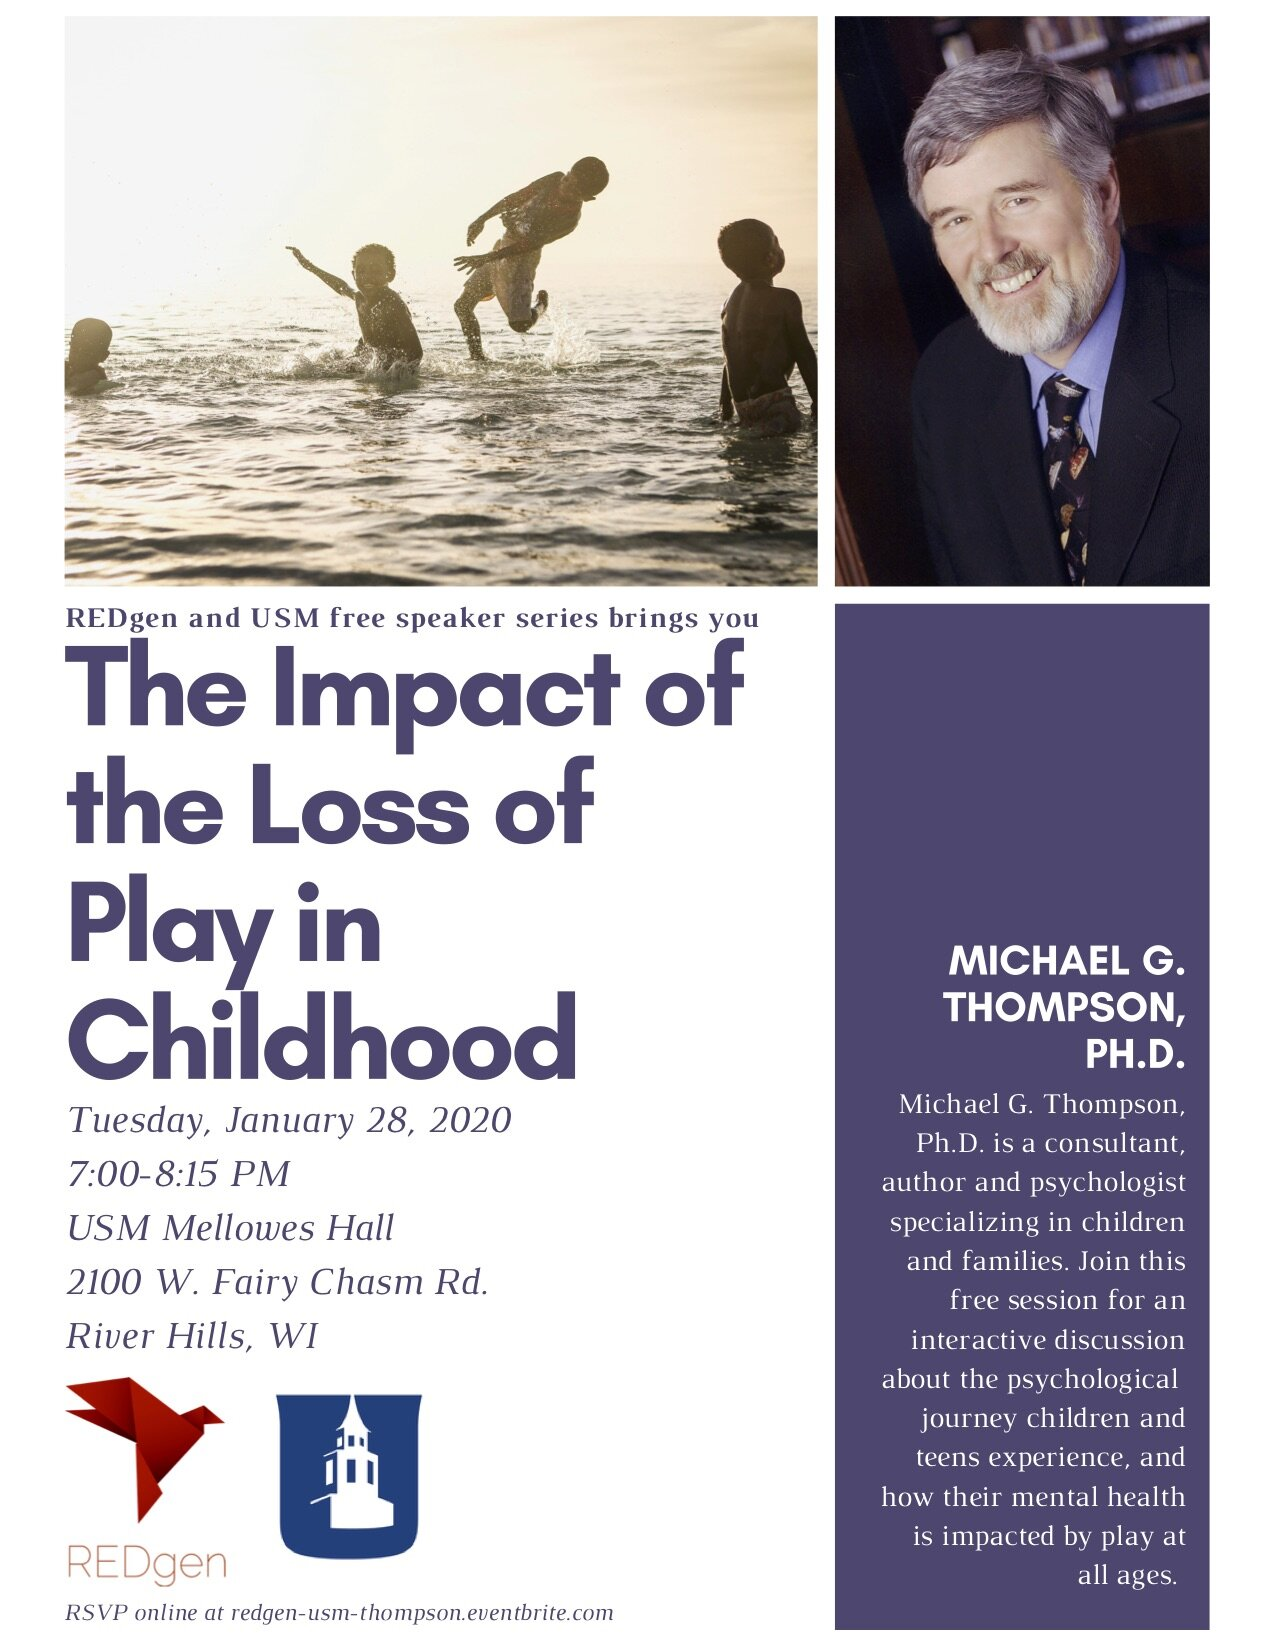 RSVP AT  https://www.eventbrite.com/e/redgen-and-usm-speaker-series-the-impact-of-the-loss-of-play-in-childhood-tickets-71813127999